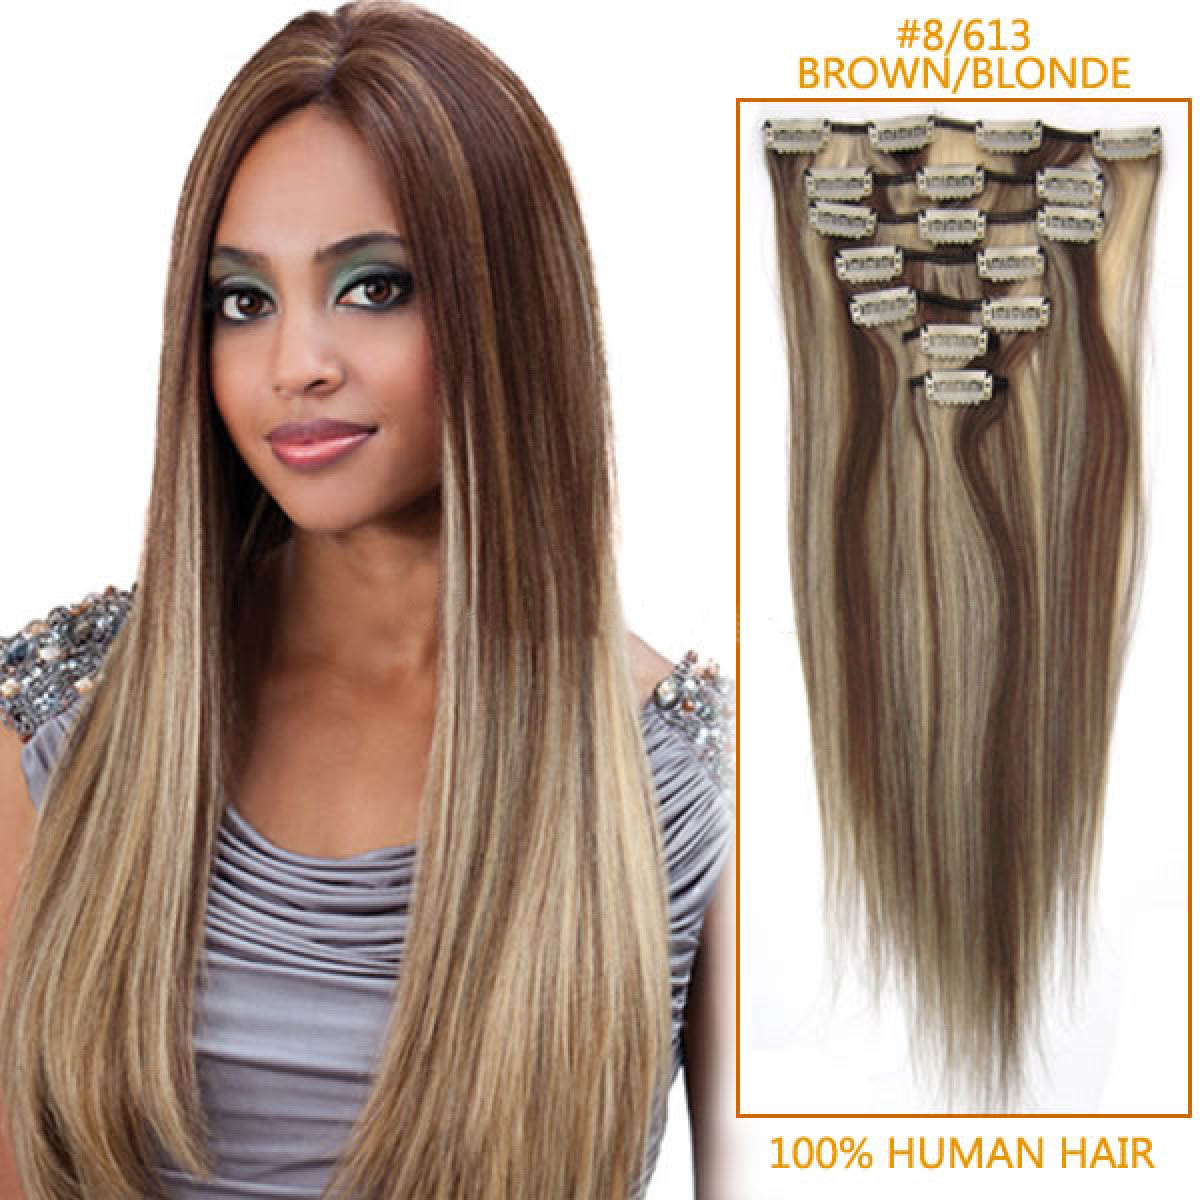 28 Inch 8613 Brownblonde Clip In Remy Human Hair Extensions 7pcs